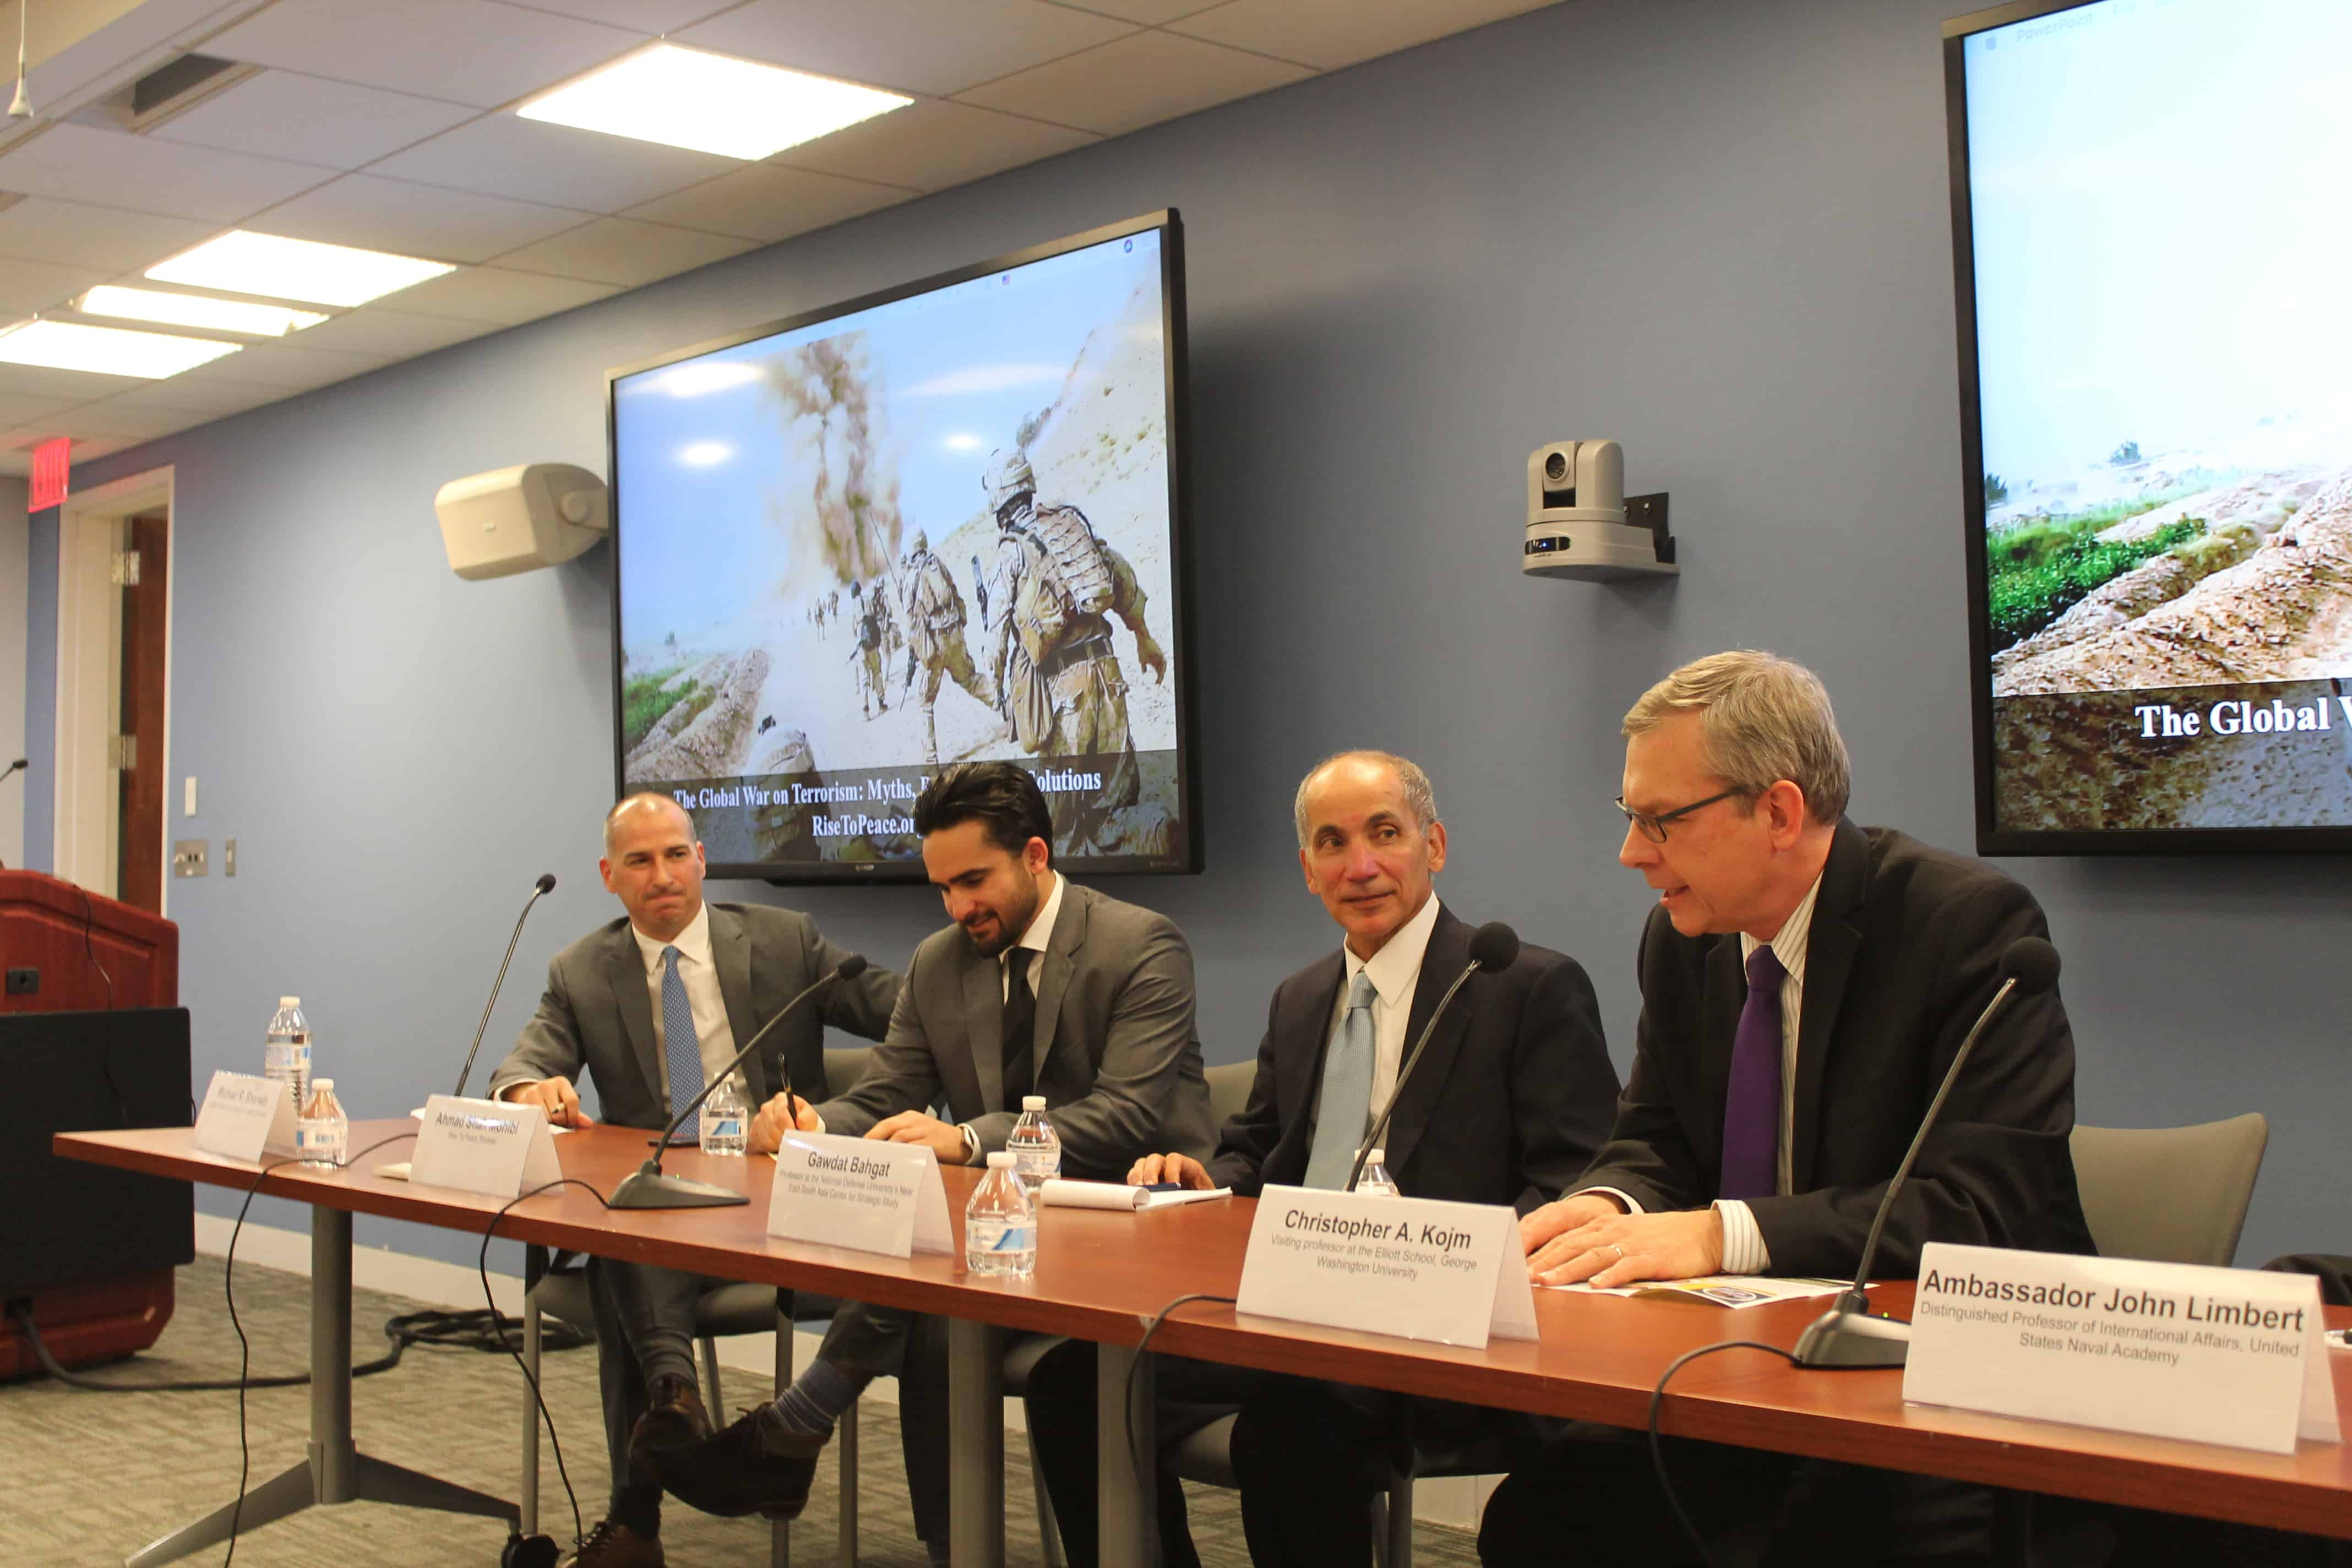 IMG 2848 - The Global War on Terrorism: Myths, Realities & Solutions